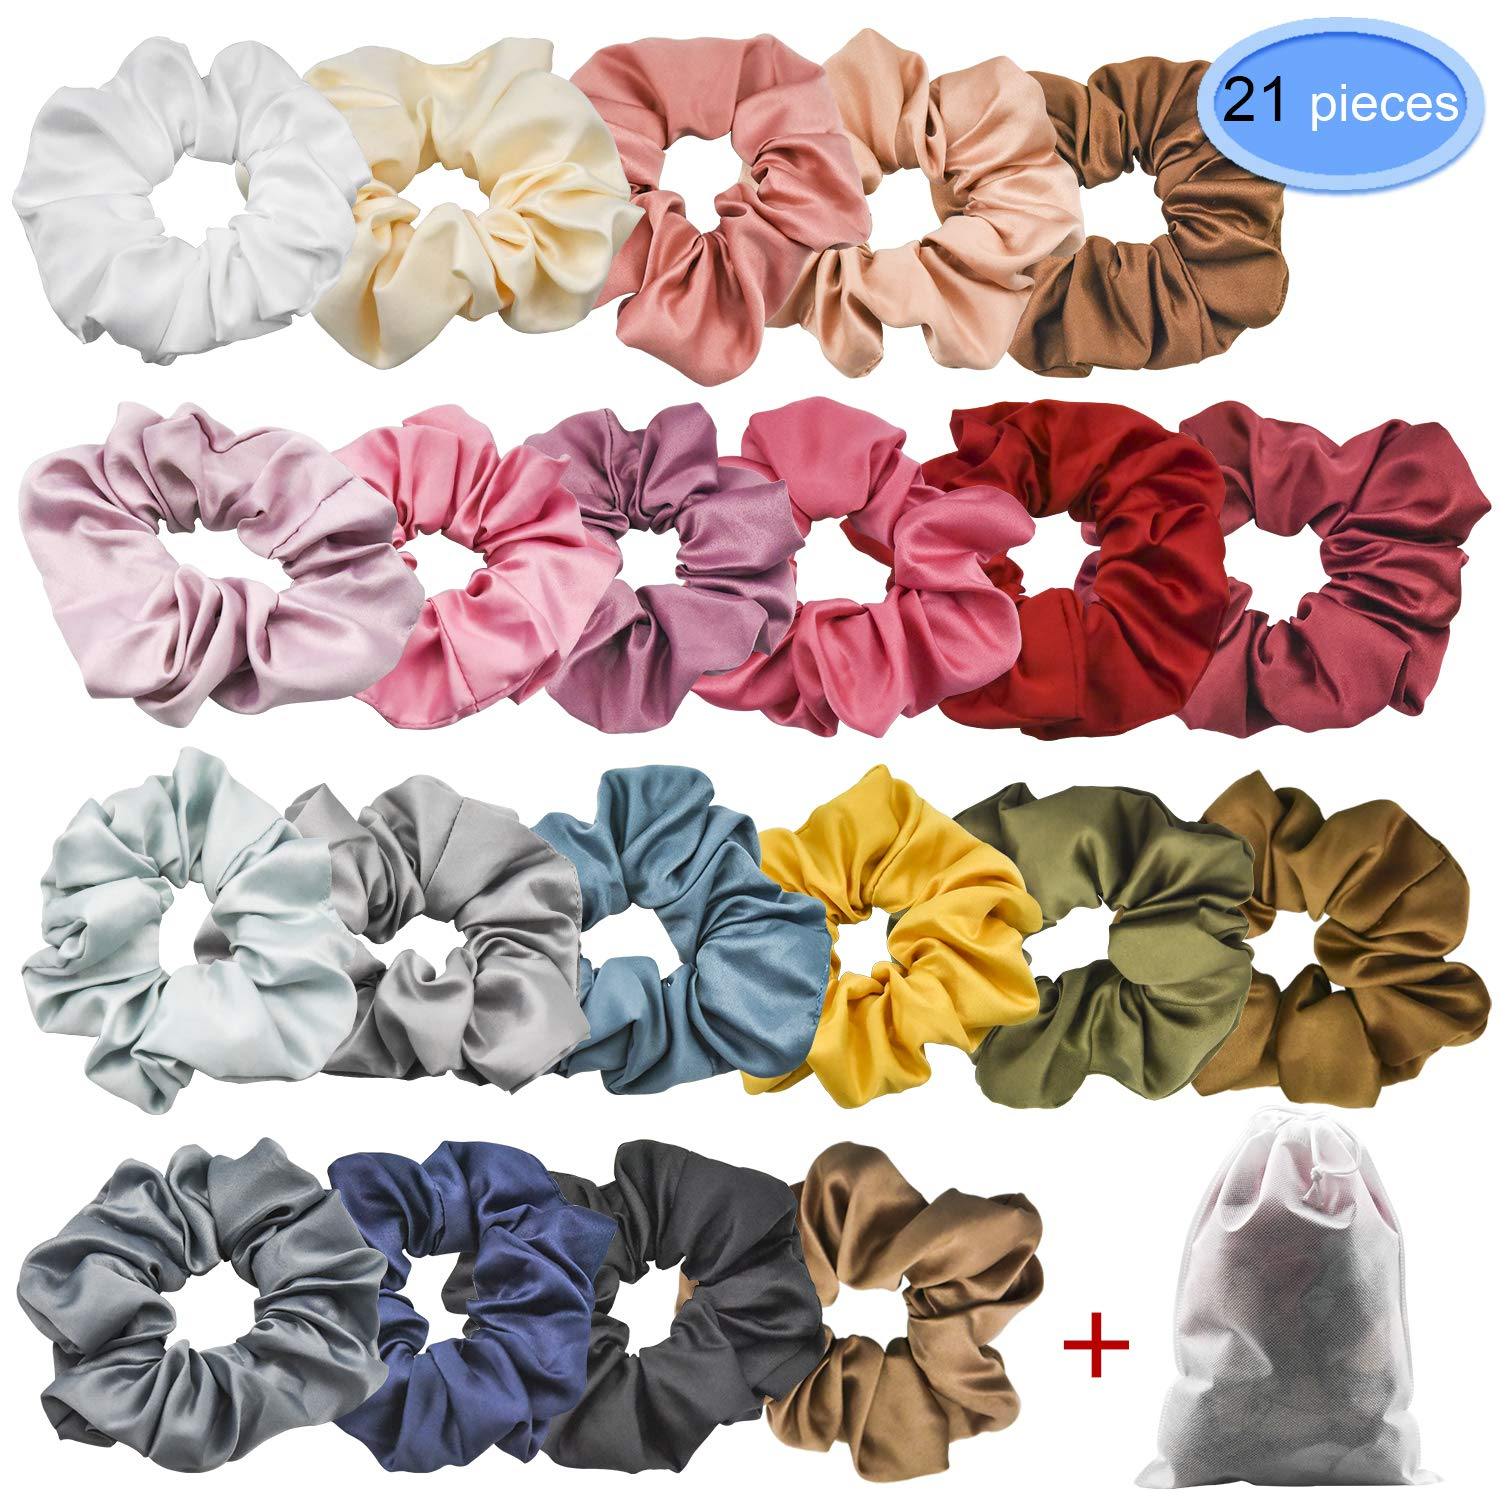 EAONE 21 Colors Hair Scrunchies Satin Elastic Ties Hair Bands Scrunchy Vintage Ponytail Holder Headbands for Women Girls, 21 Pieces